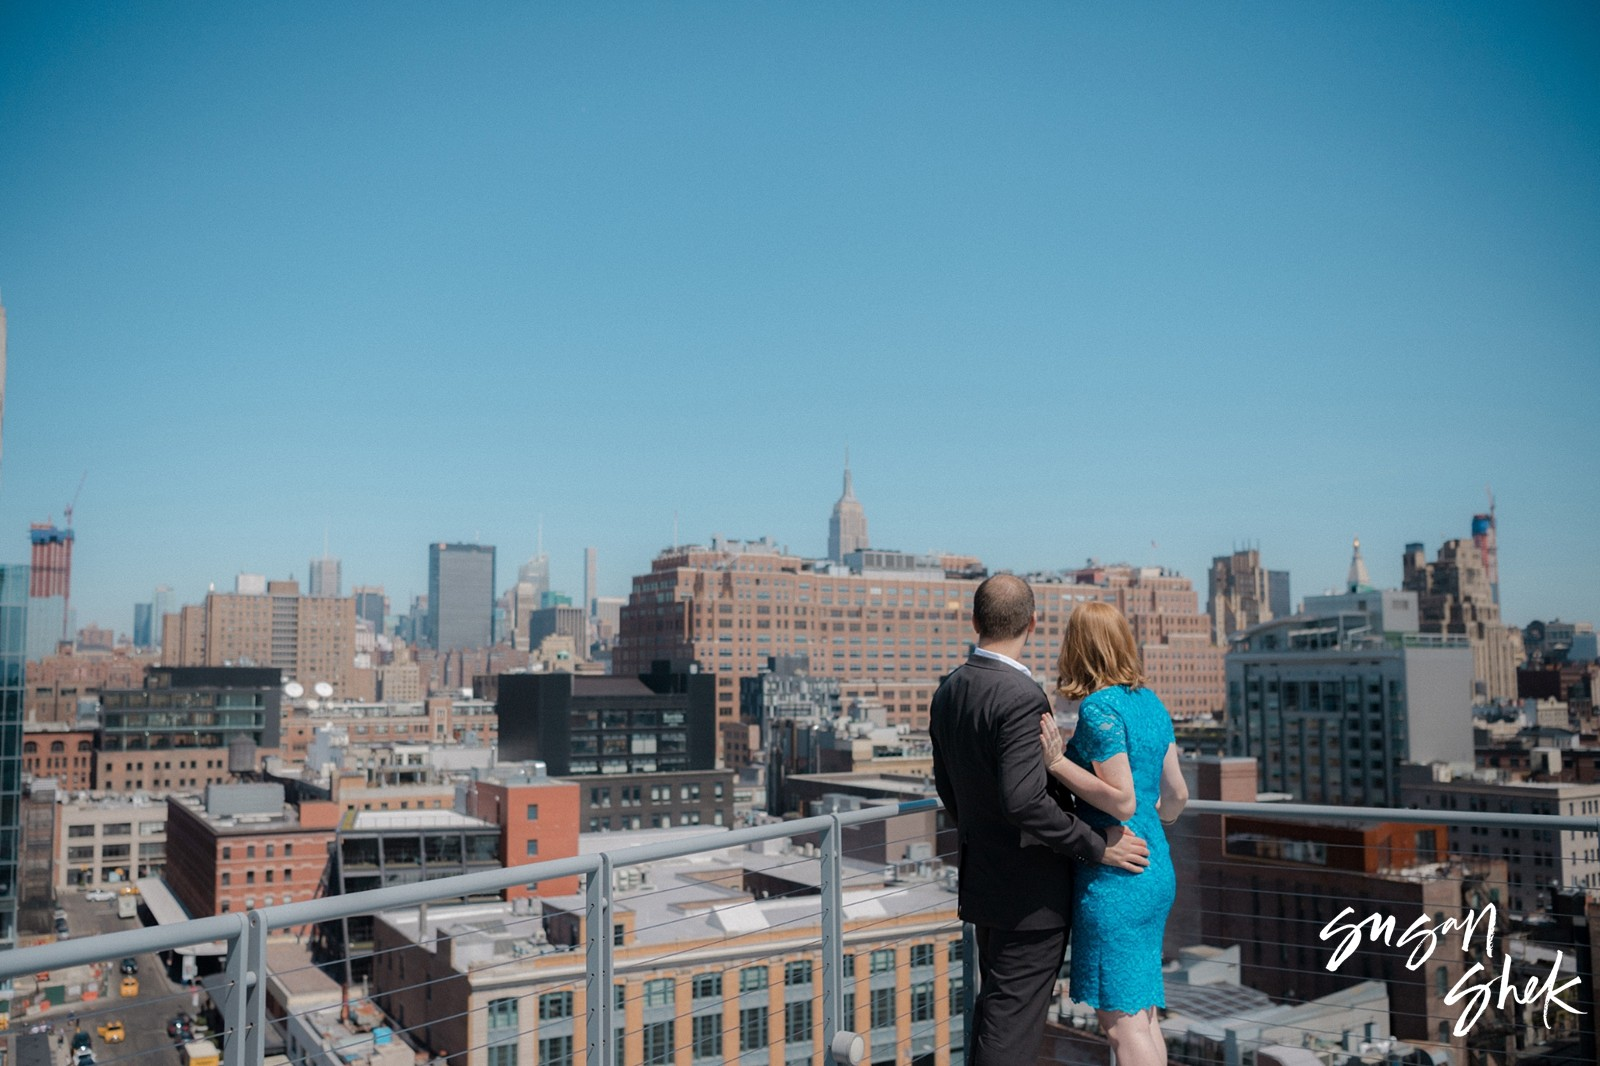 Whitney Museum, Engagement Shoot, NYC Engagement Photographer, Engagement Session, Engagement Photography, Engagement Photographer, NYC Wedding Photographer